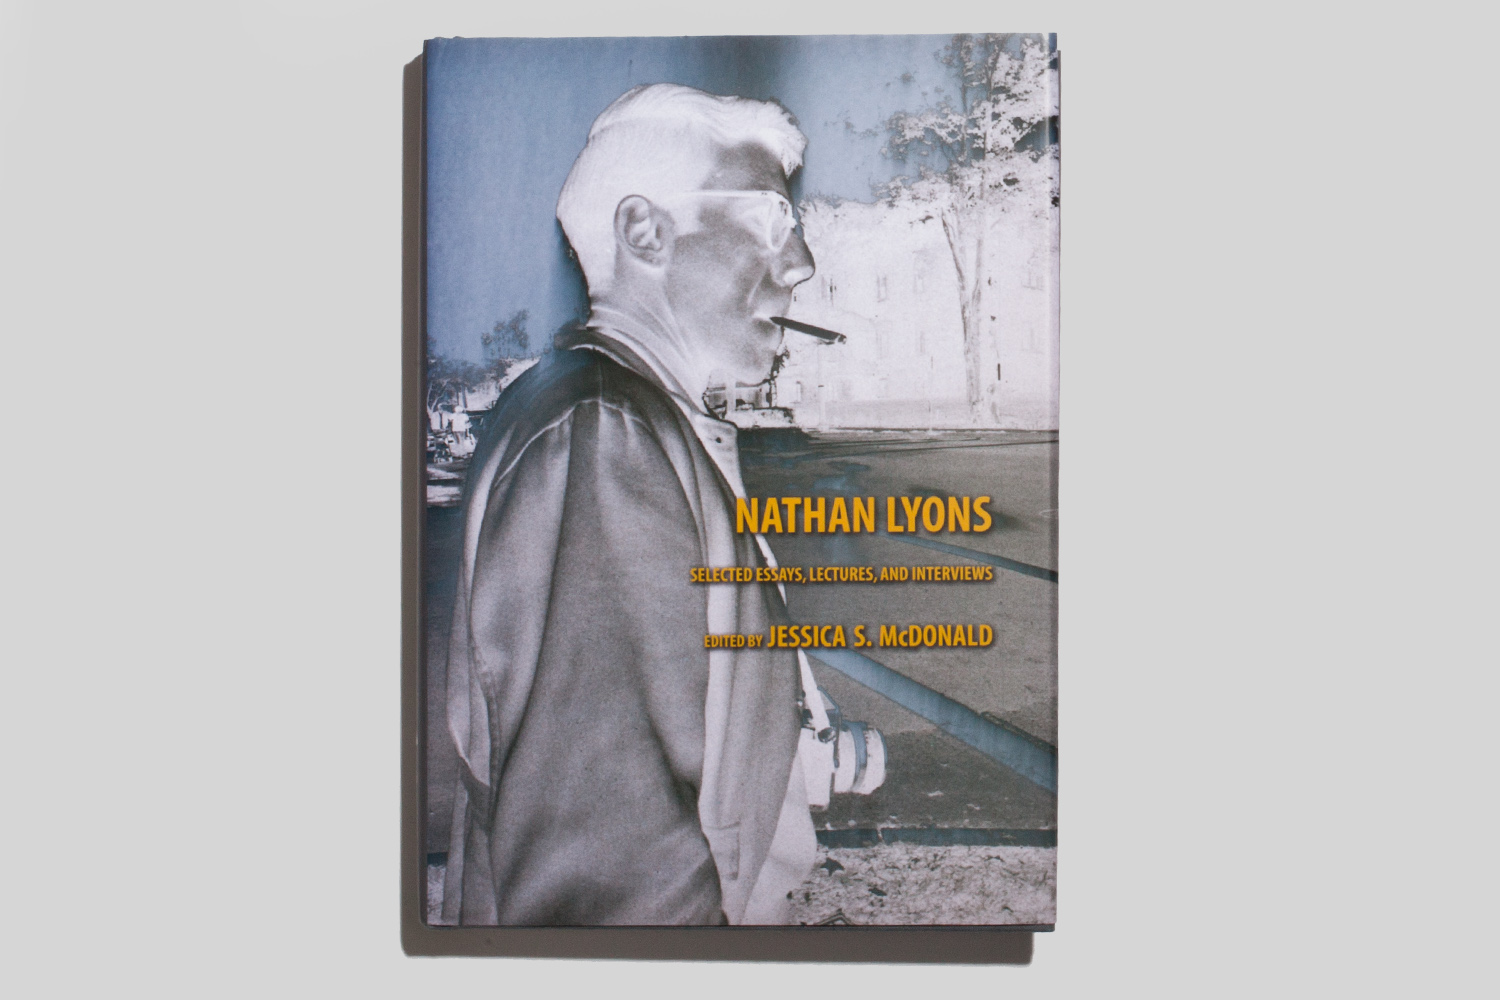 Nathan Lyons: Selected Essays, Lectures, and Interviews by Jessica S. McDonald, selected by Anne Wilkes Tucker, curator of photography at the Houston Museum of Fine Arts